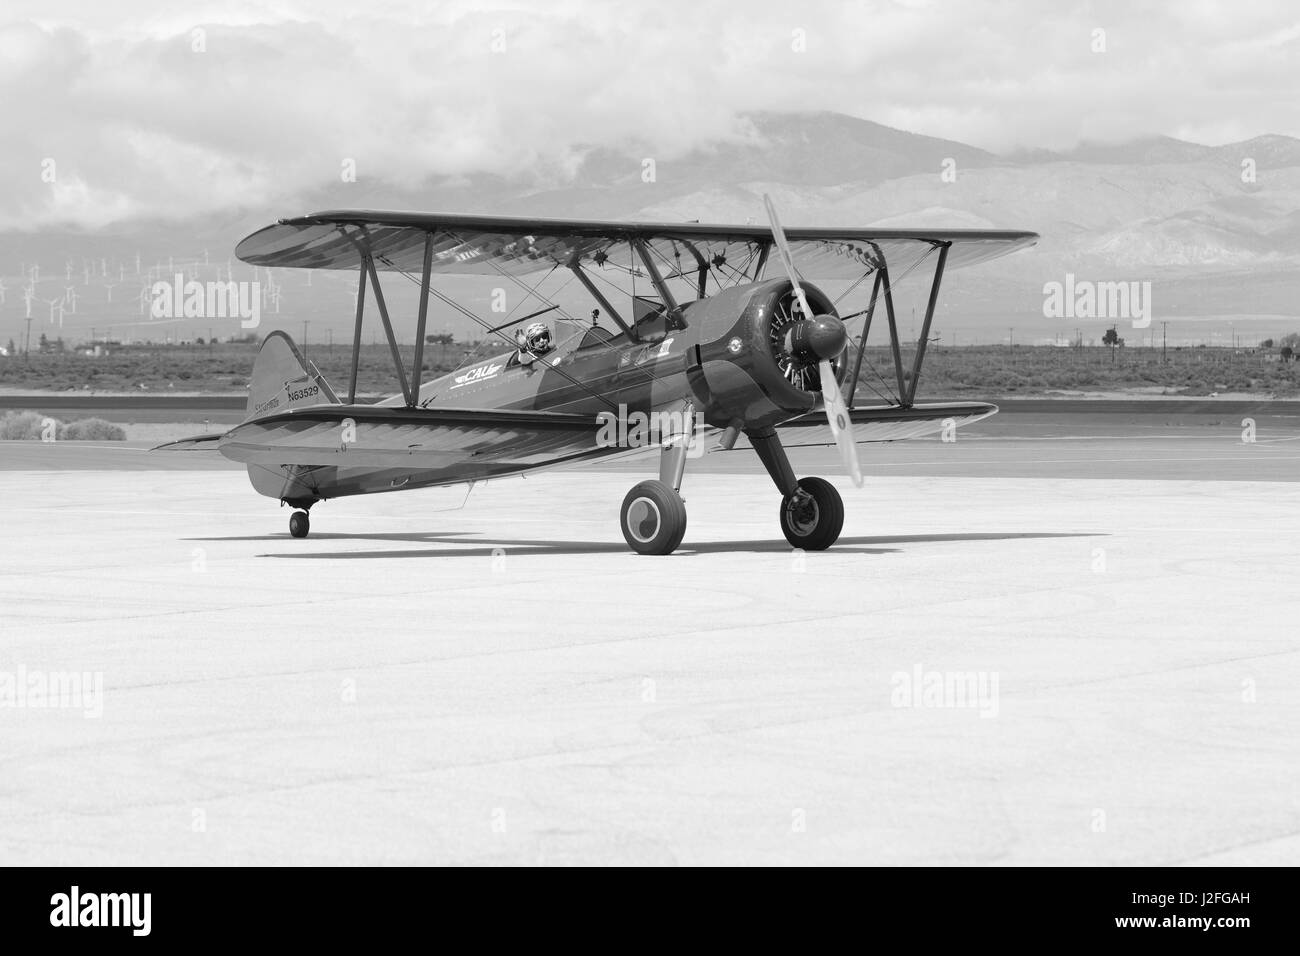 Lancaster, USA - March 25, 2017: Vicky Benzing taxiing her 1940 Boeing Stearman during Los Angeles County Air Show - Stock Image